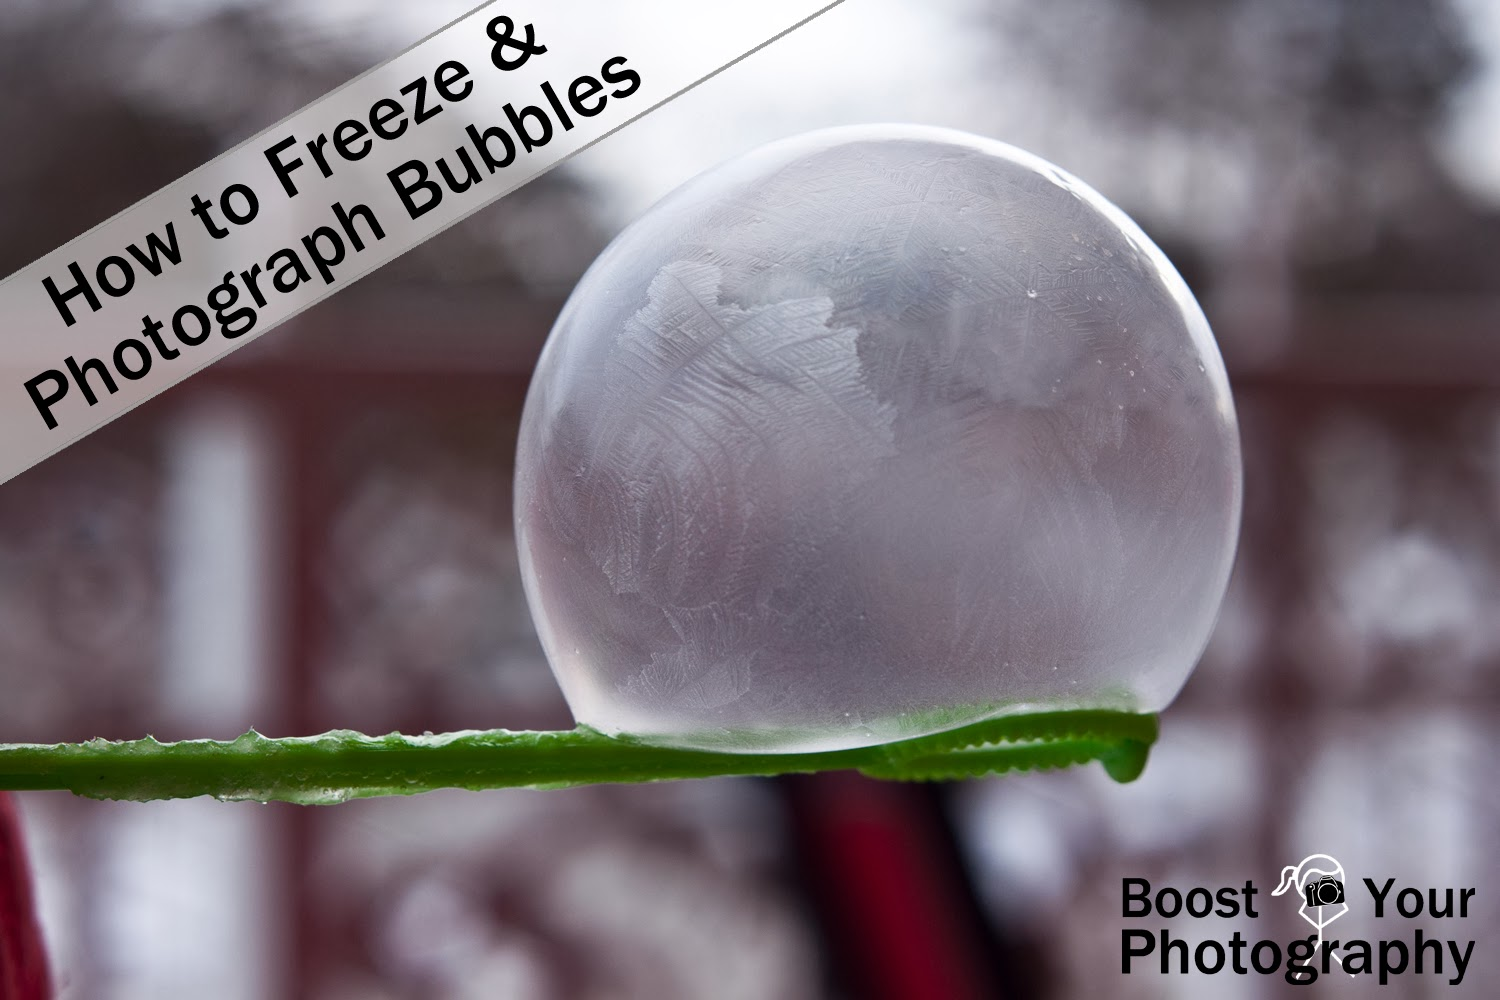 bubbles, frozen bubbles, frozen bubble photography, how to, photography